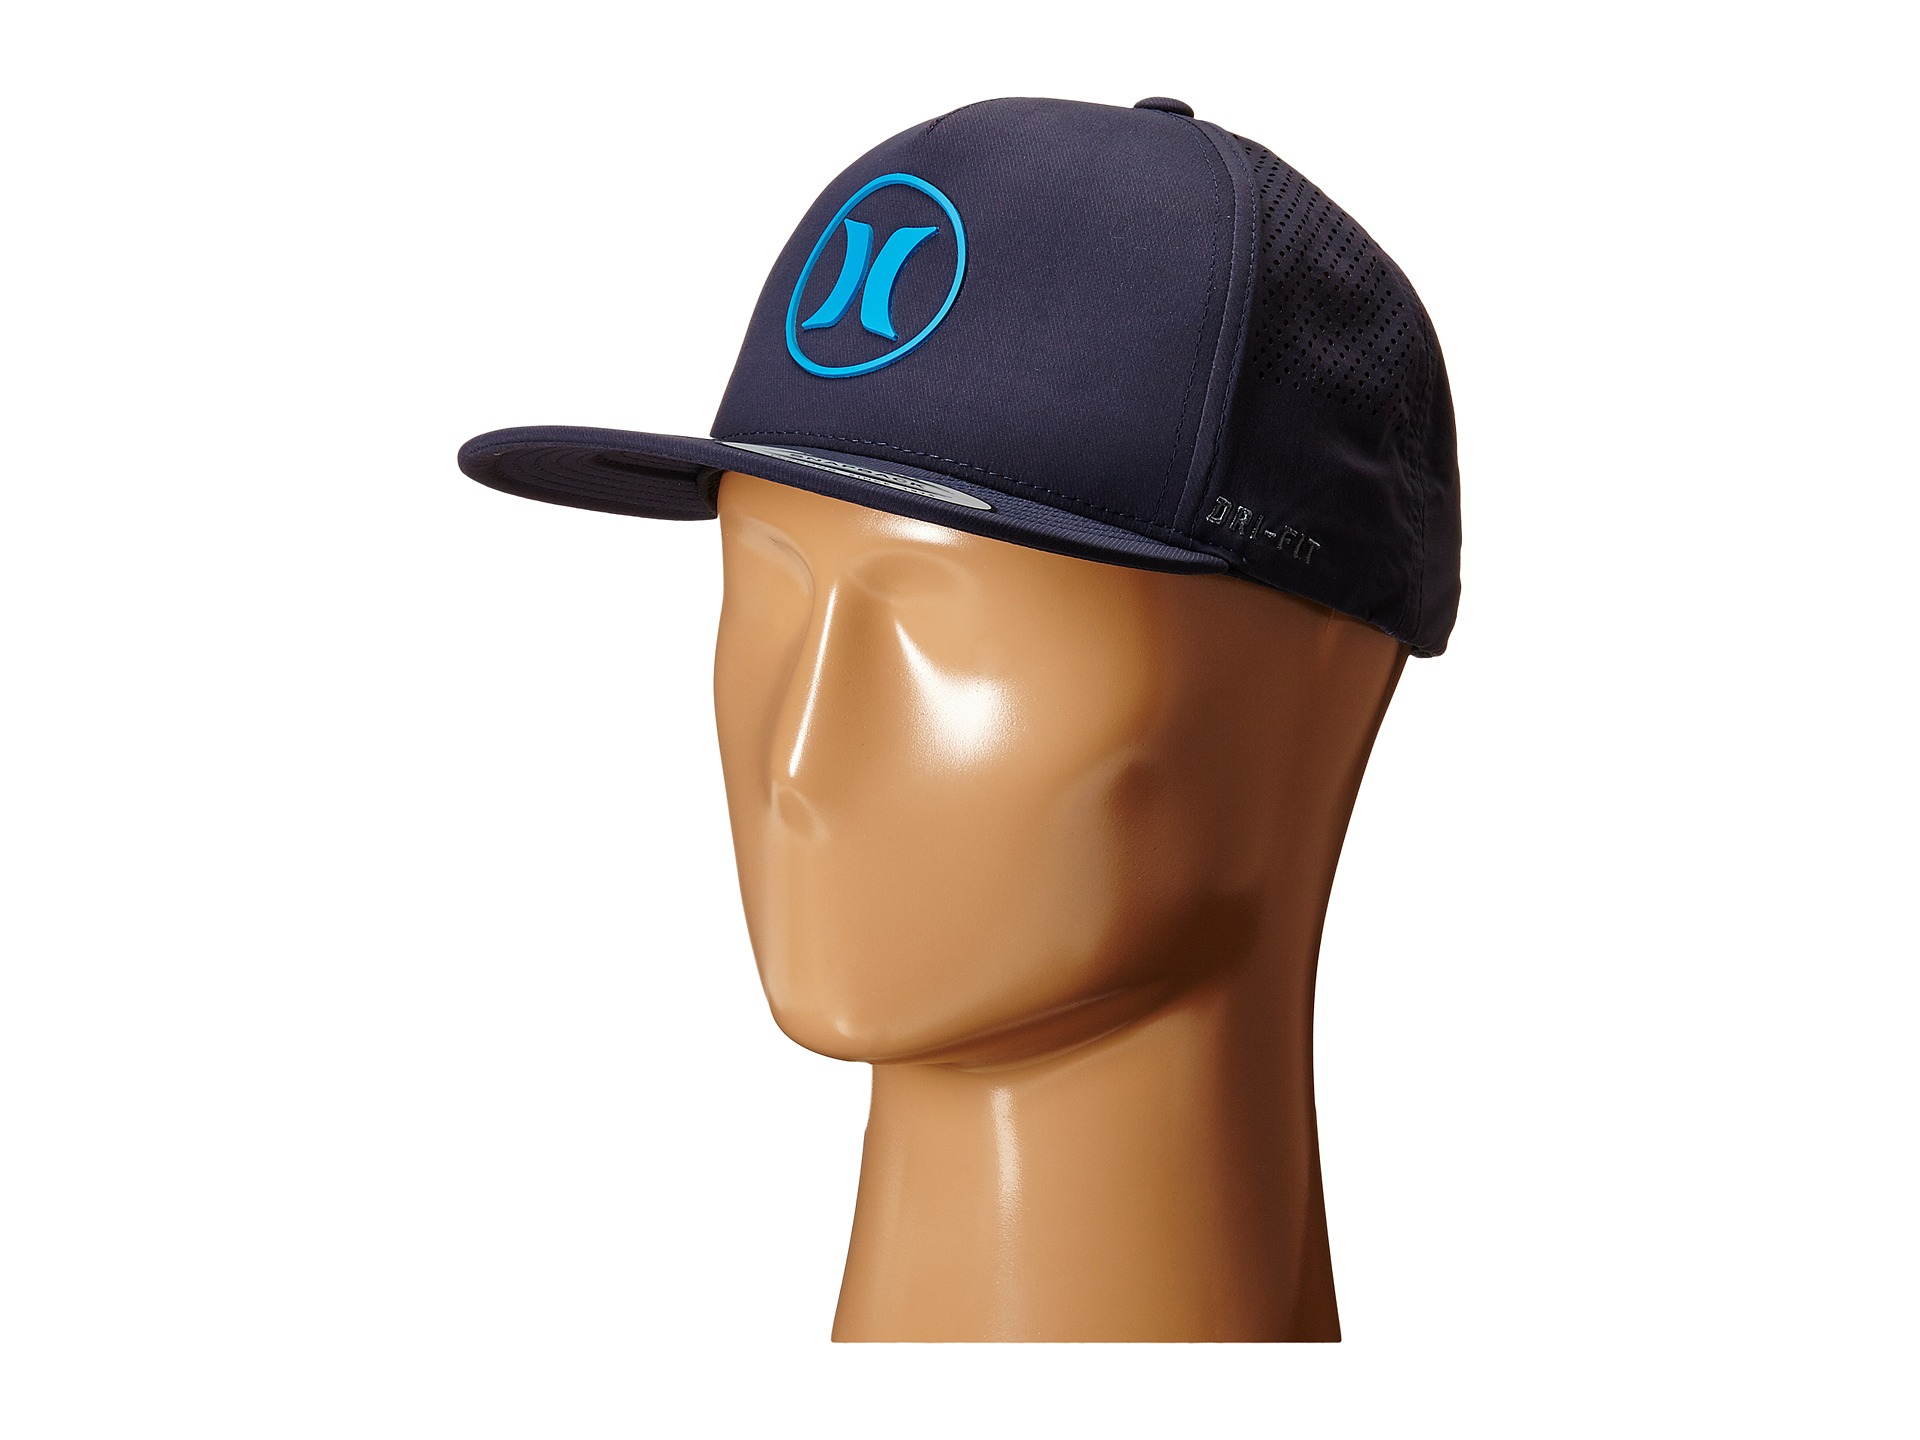 new styles 85f71 6eaf8 ... promo code for lyst hurley dri fit icon adjustable hat in blue for men  5532d 4fa01